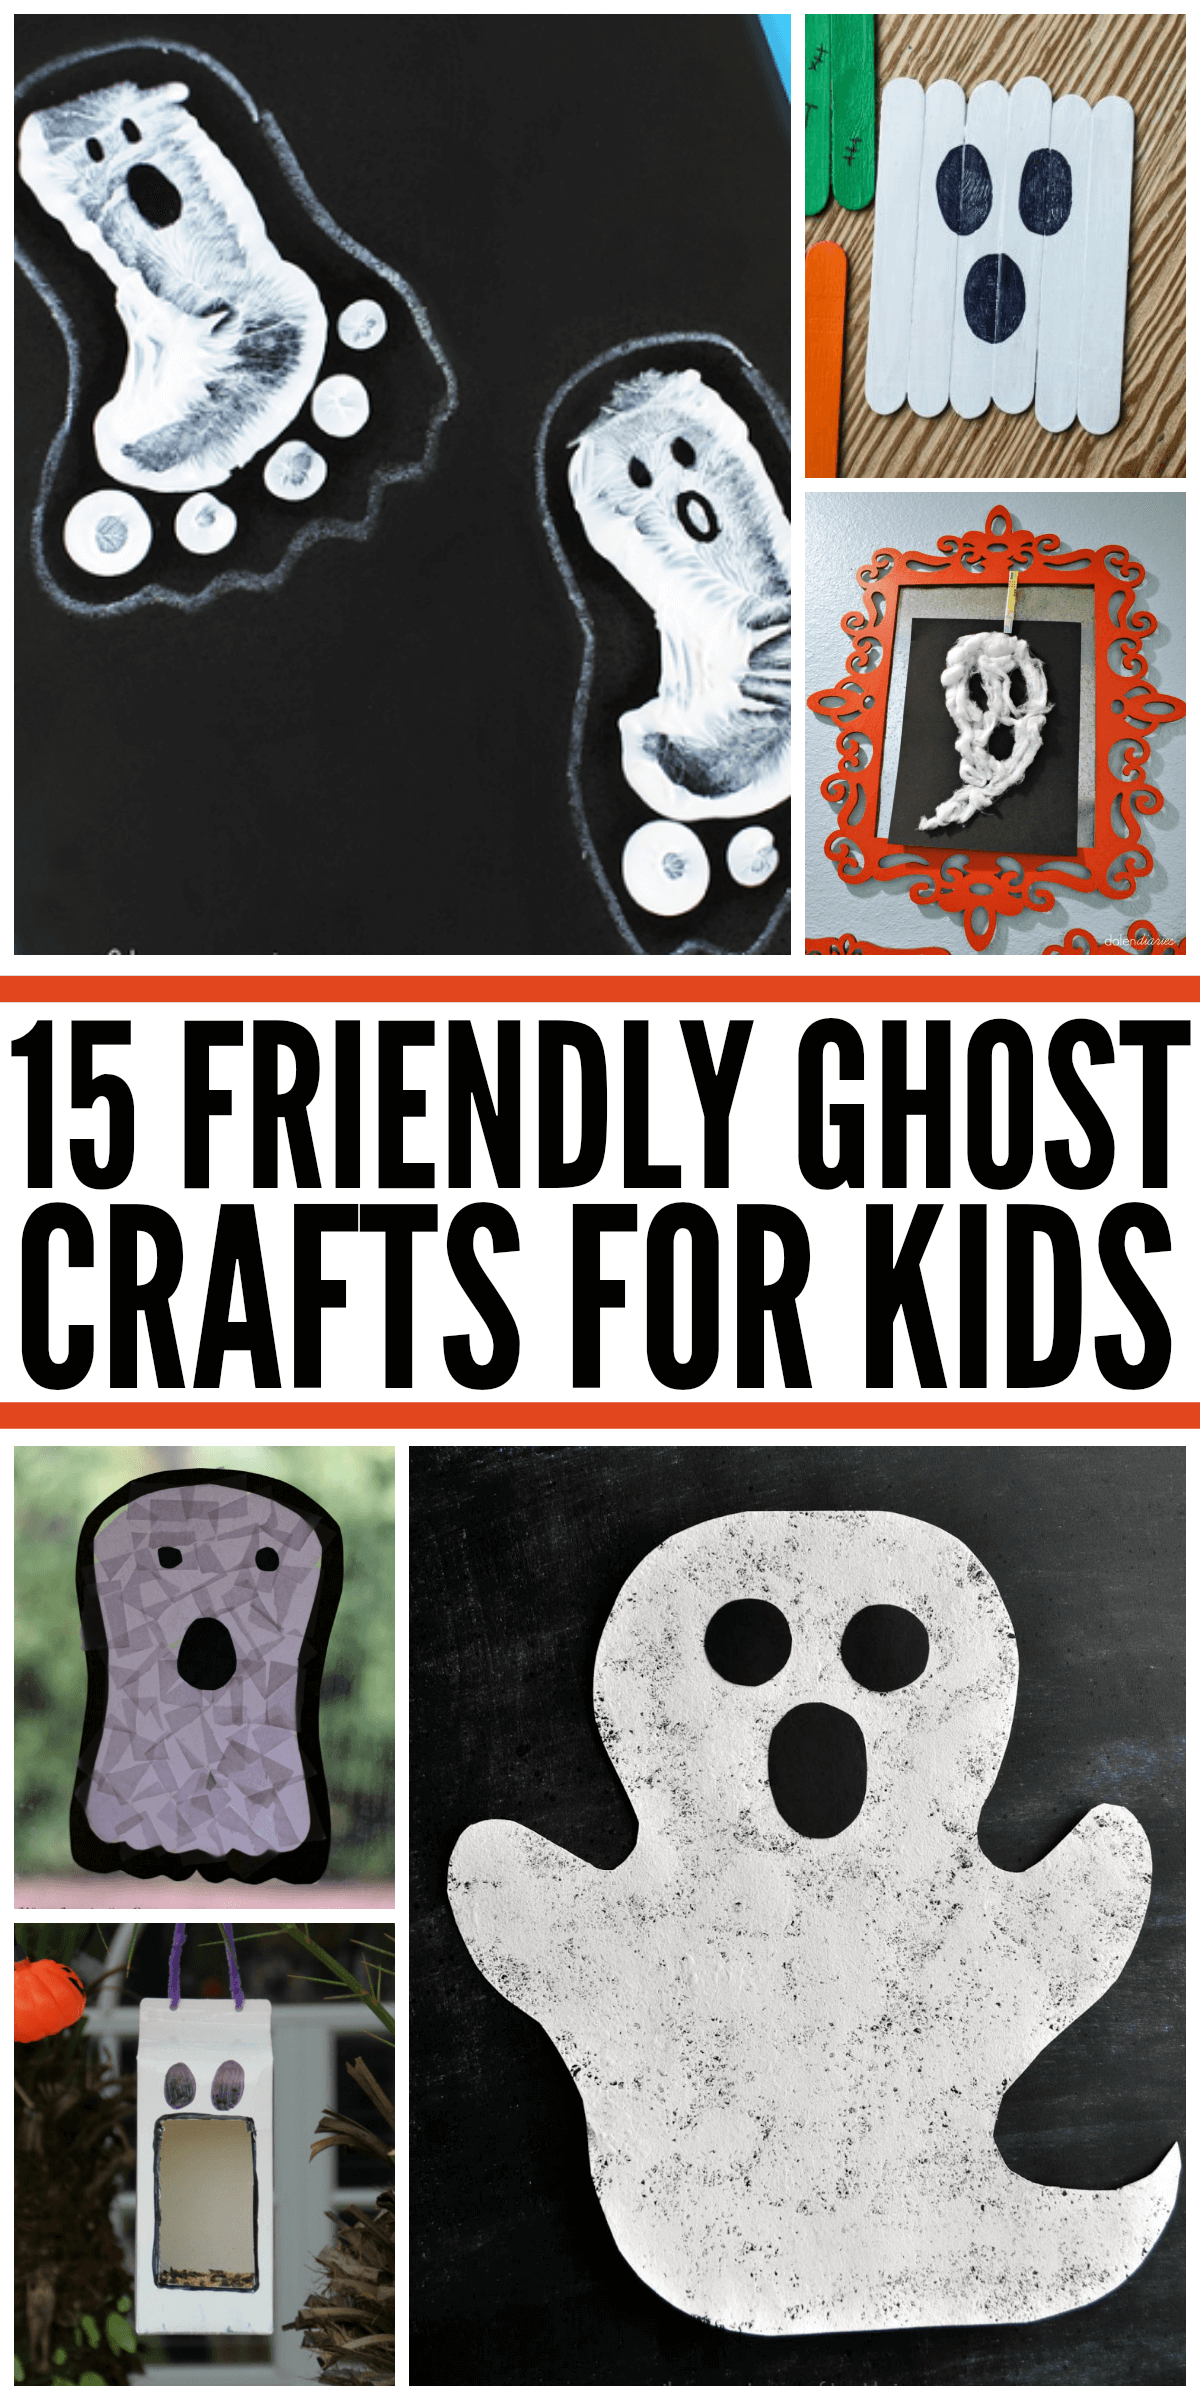 15 Friendly Ghost Crafts For Kids